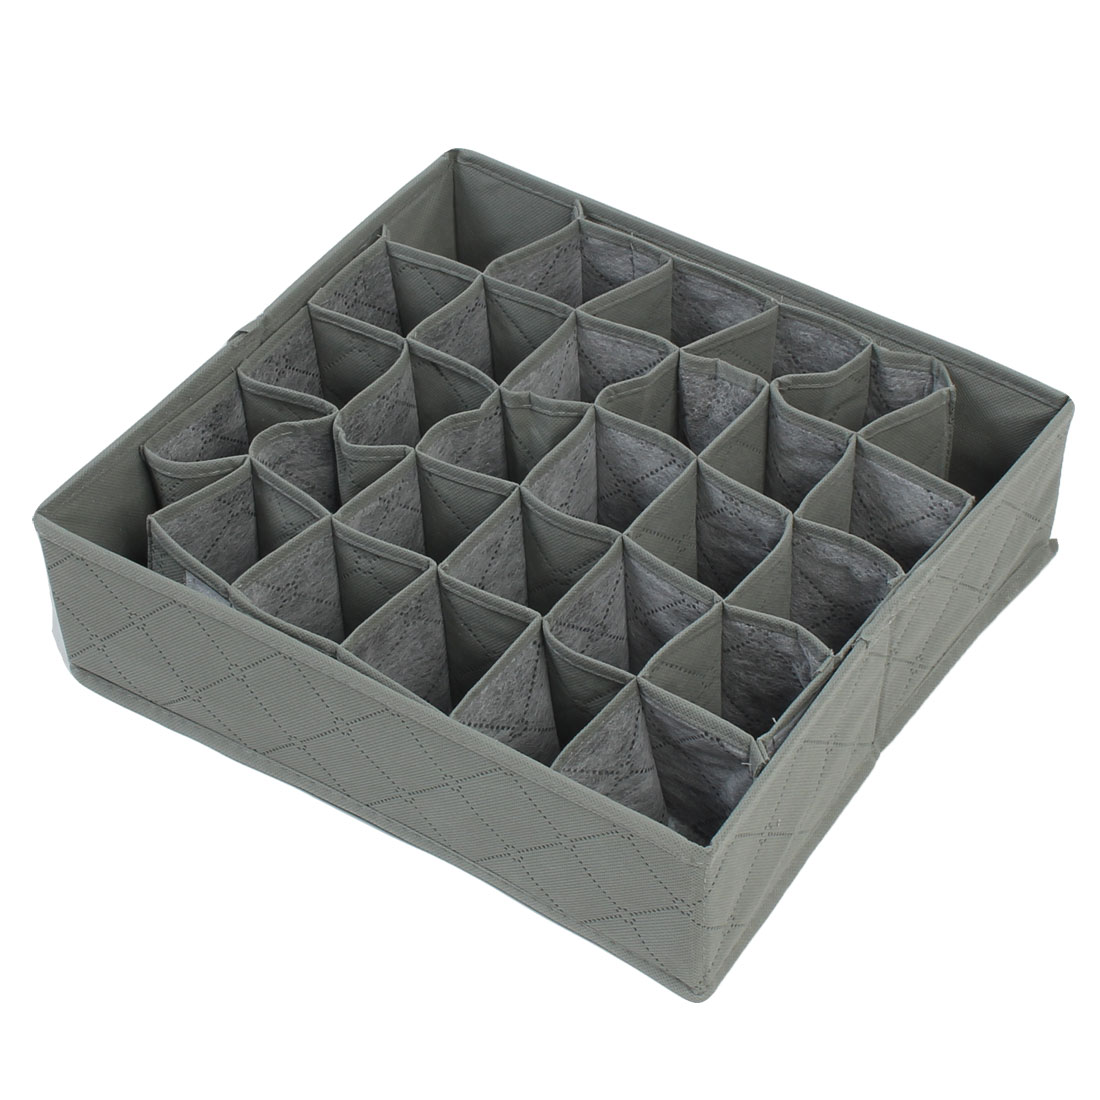 Drawer Folding 30 Compartment Tie Necktie Socks Organizer Storage Box